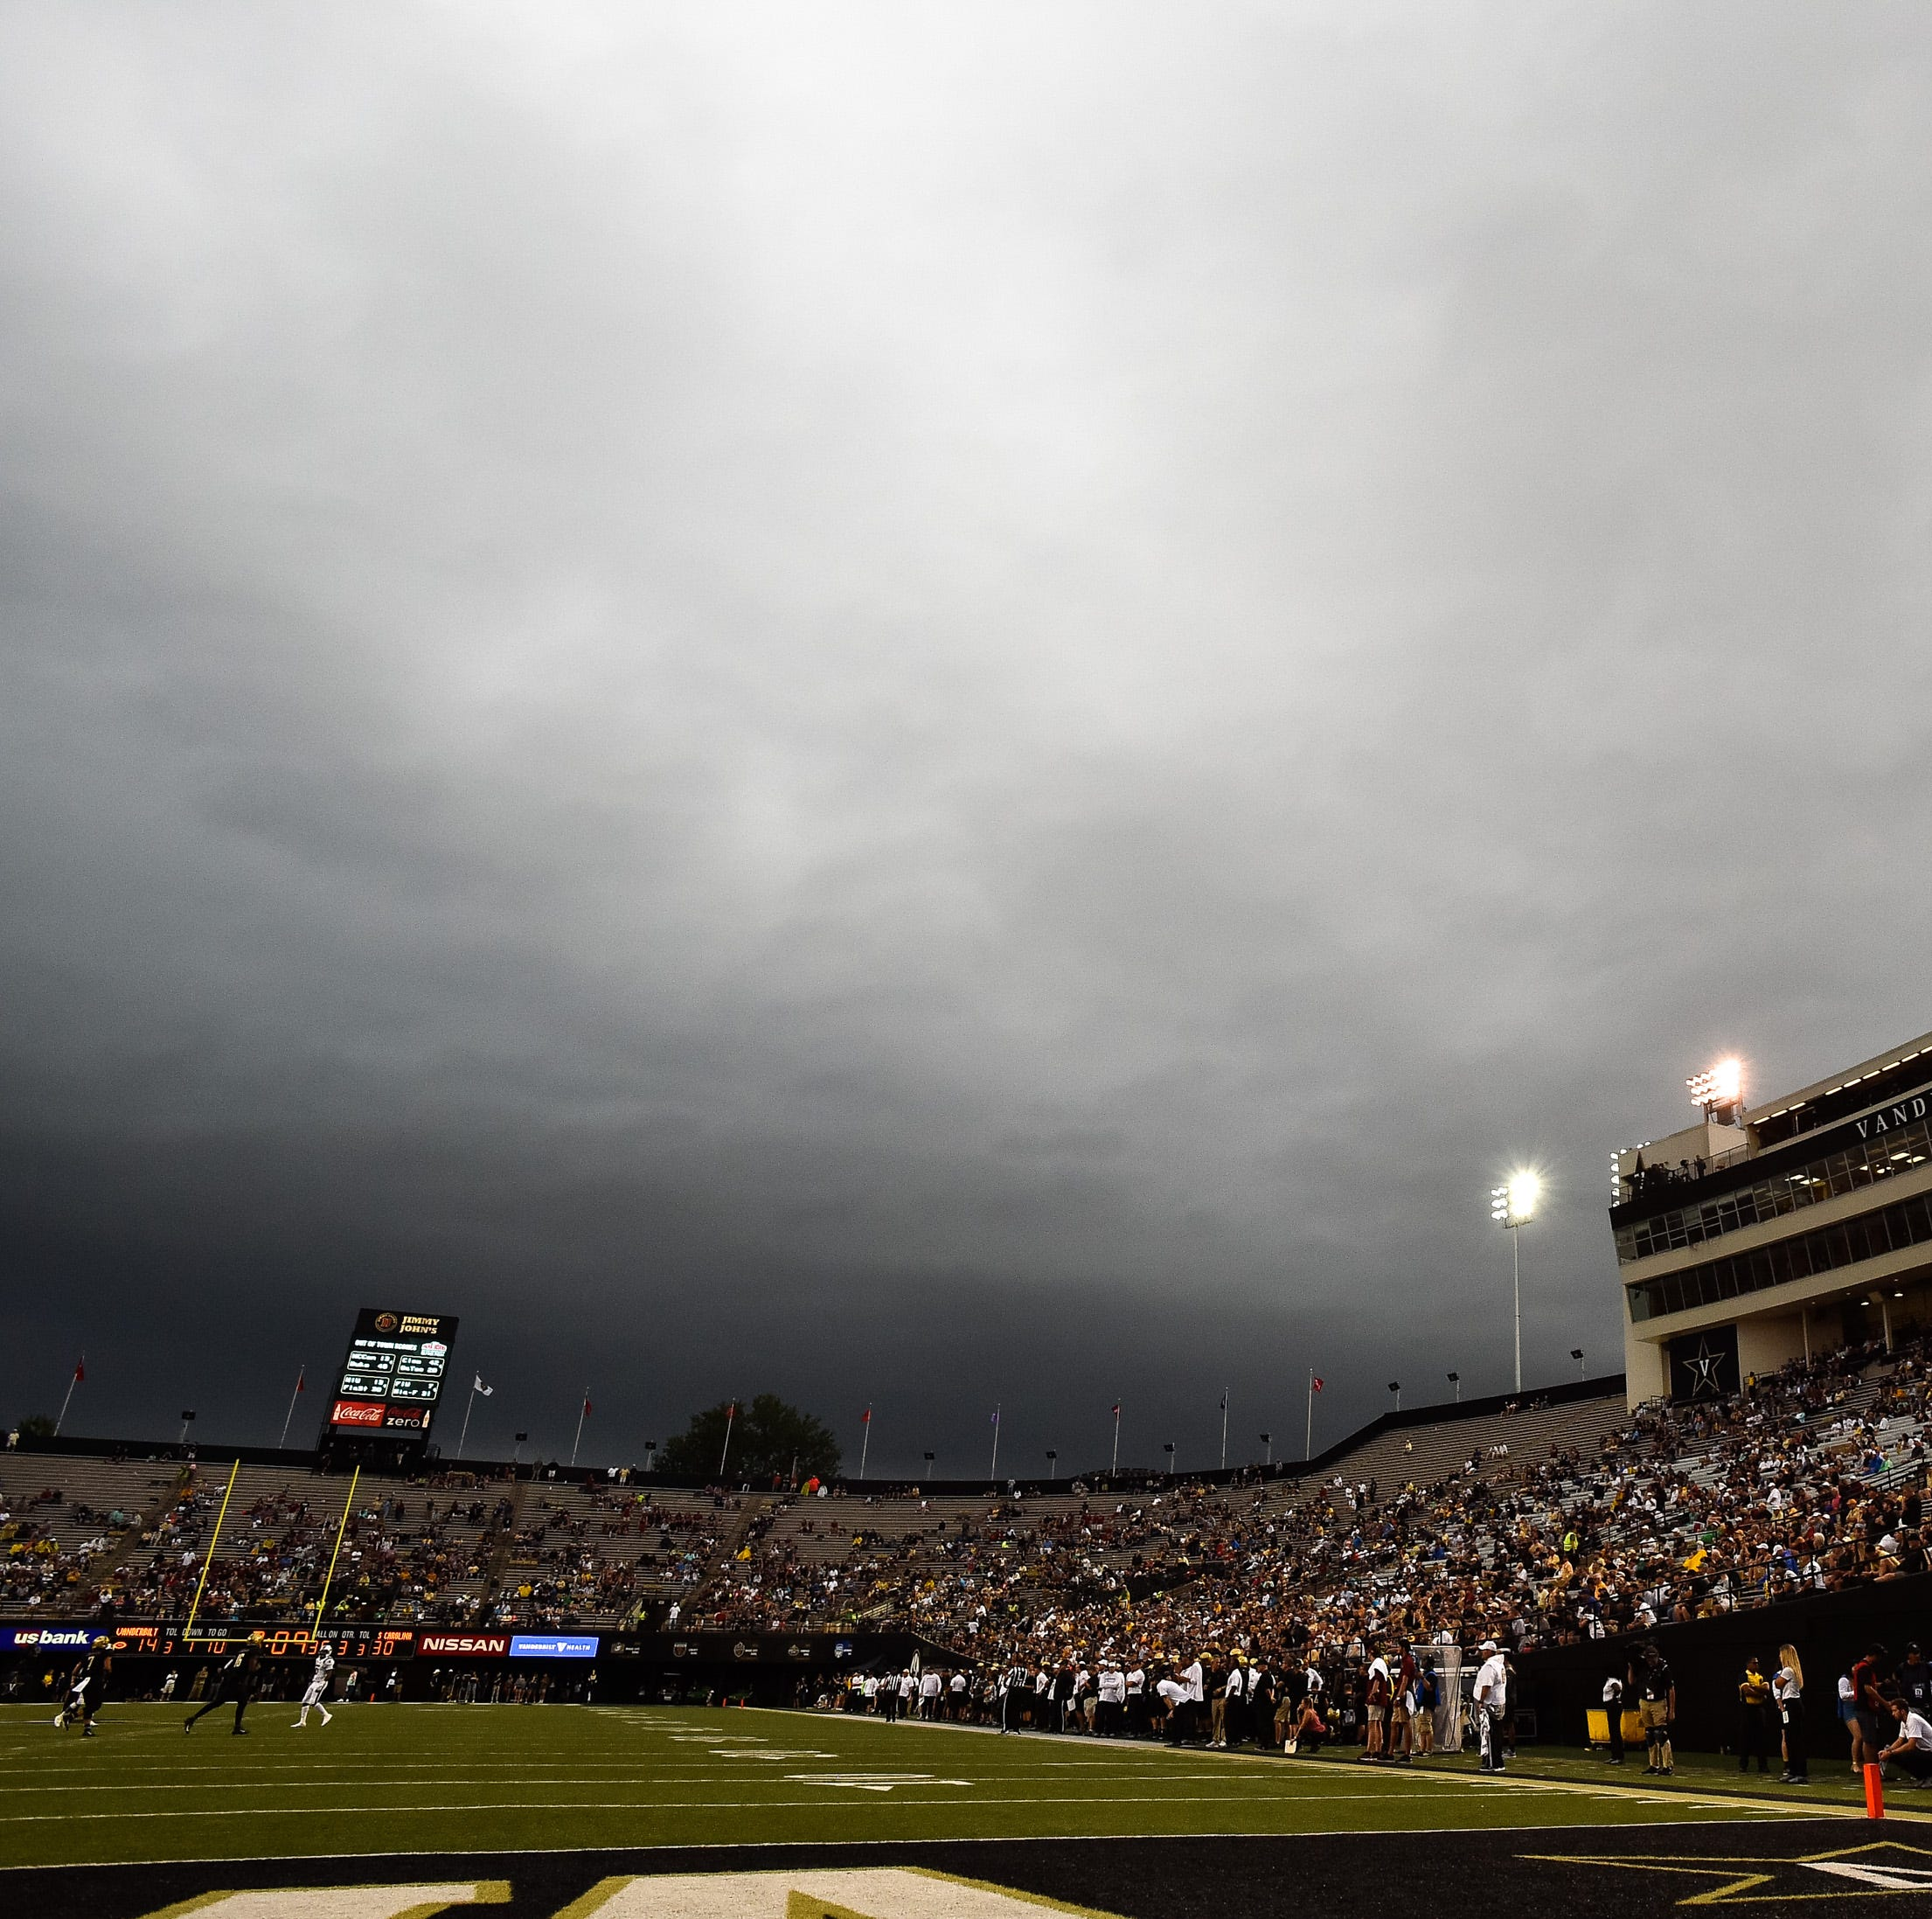 Vandy-South Carolina game to restart at 6:08 p.m.